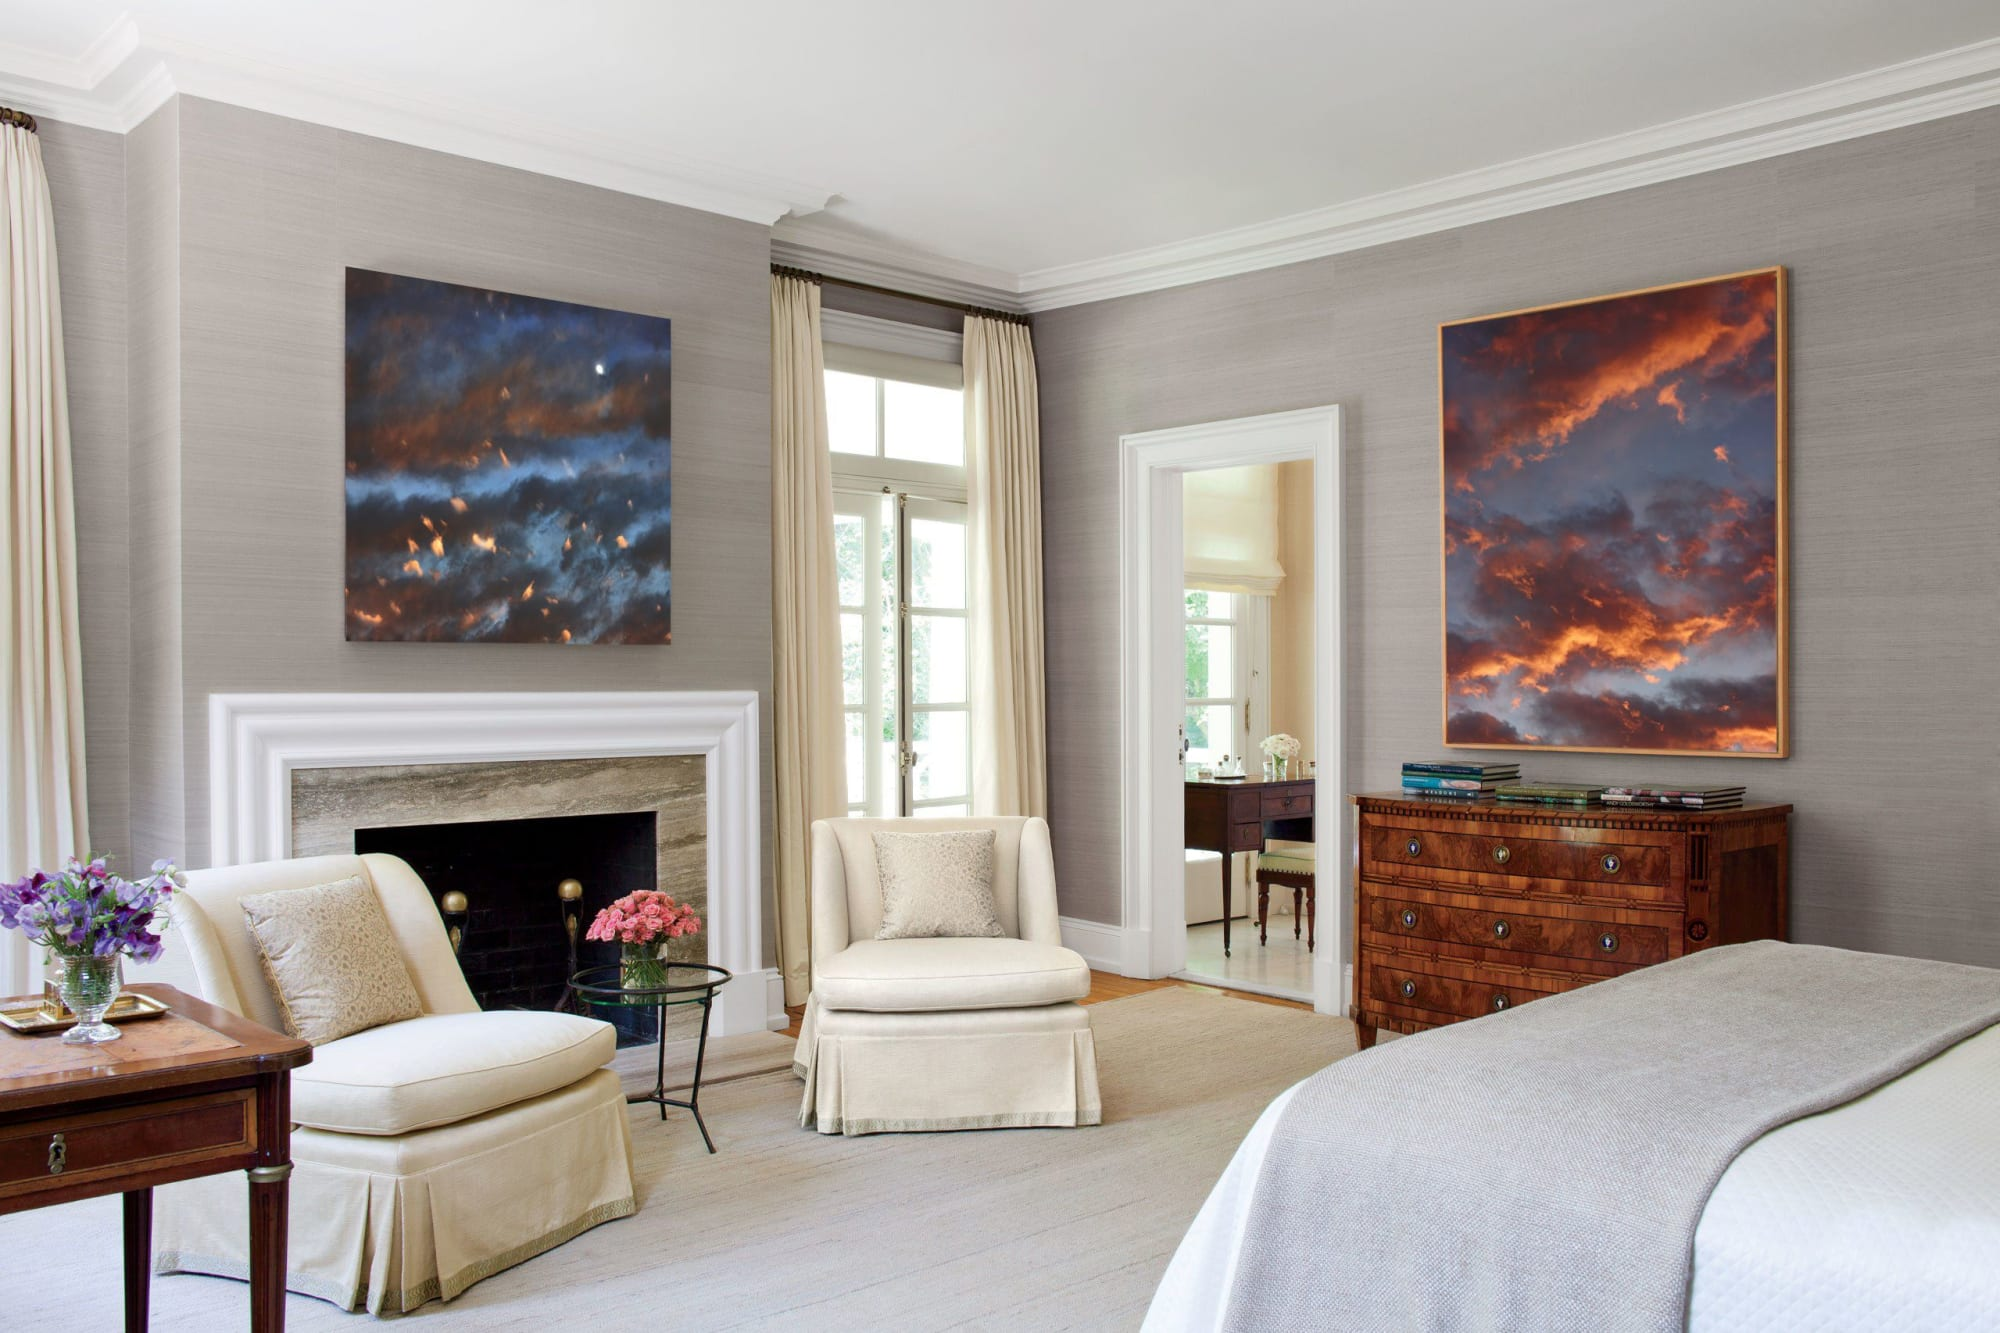 Photography by Tabitha Soren seen at Private Residence, Boston - Weathering - Sky, Clouds